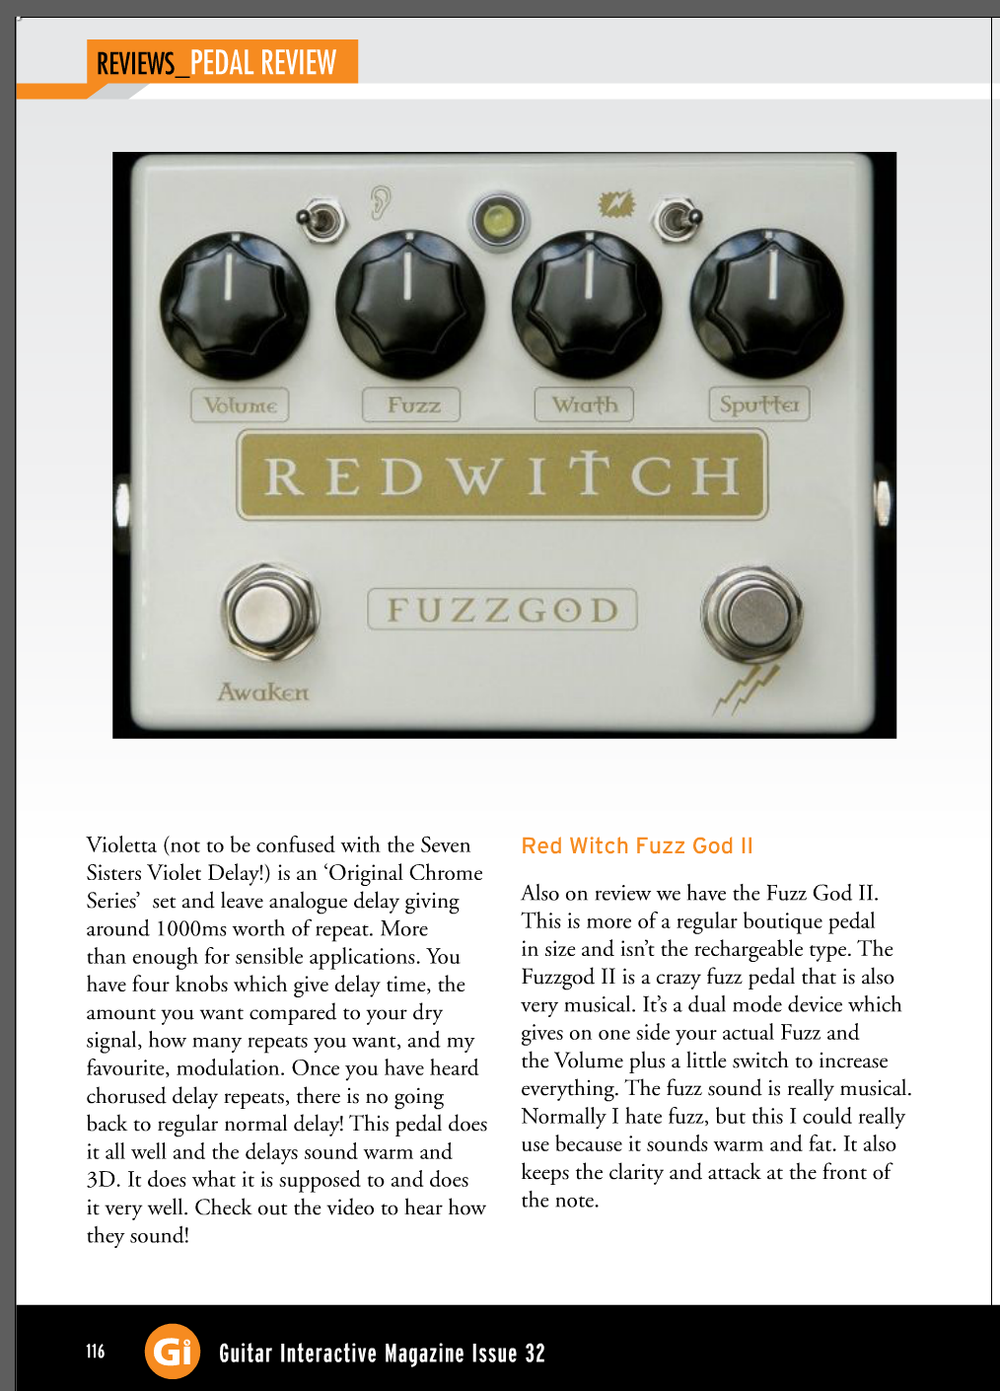 Guitar Interactive - Fuzz God II